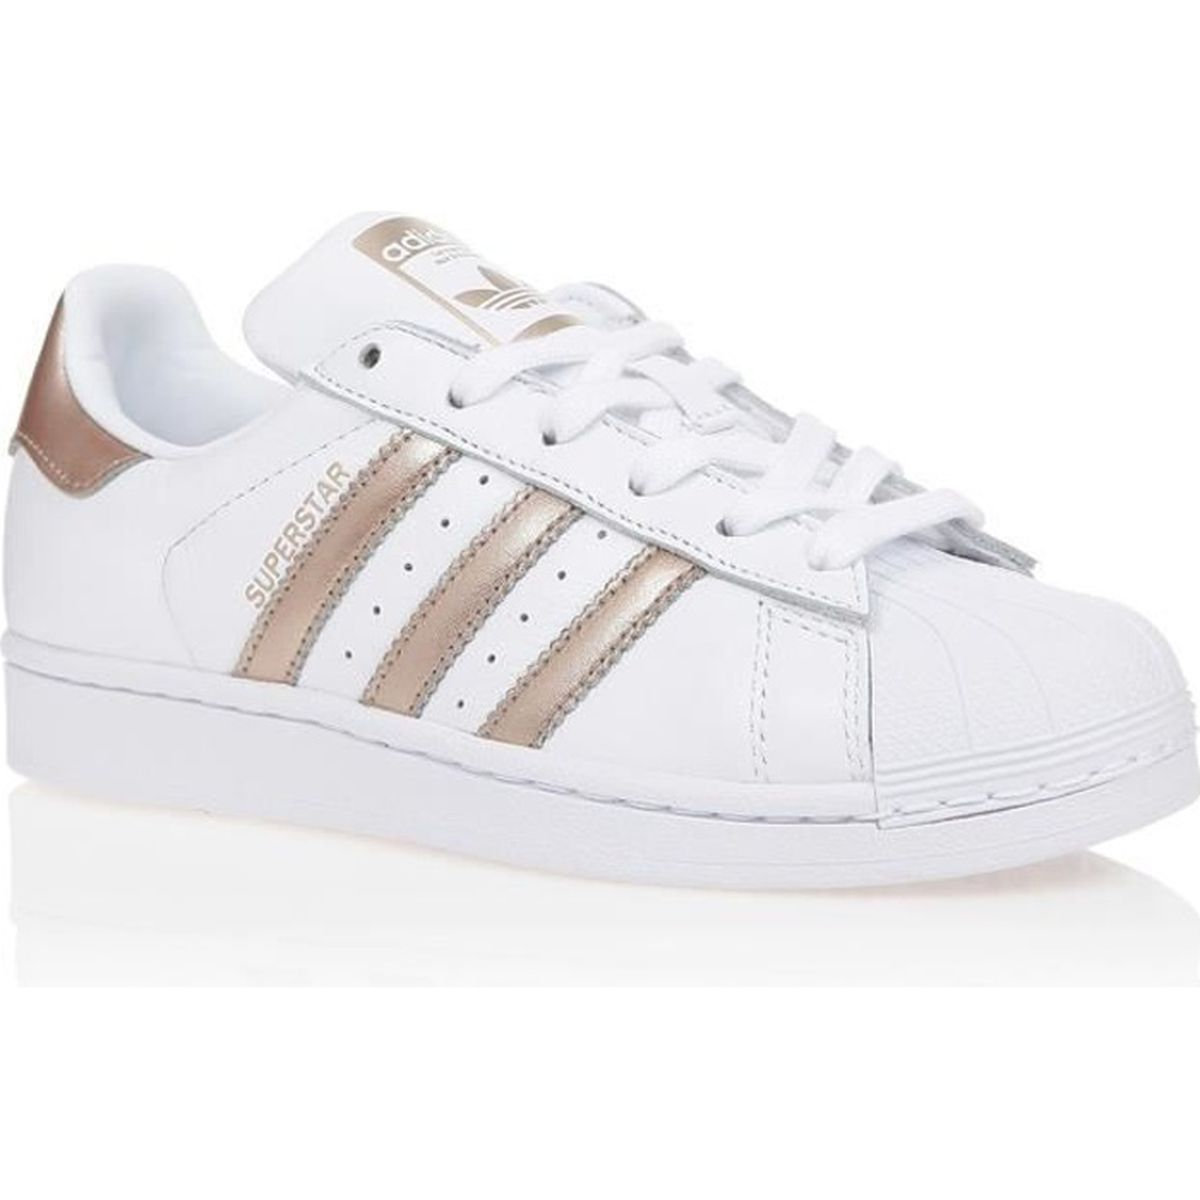 brand new 9a9f6 0b440 Basket adidas superstar femme